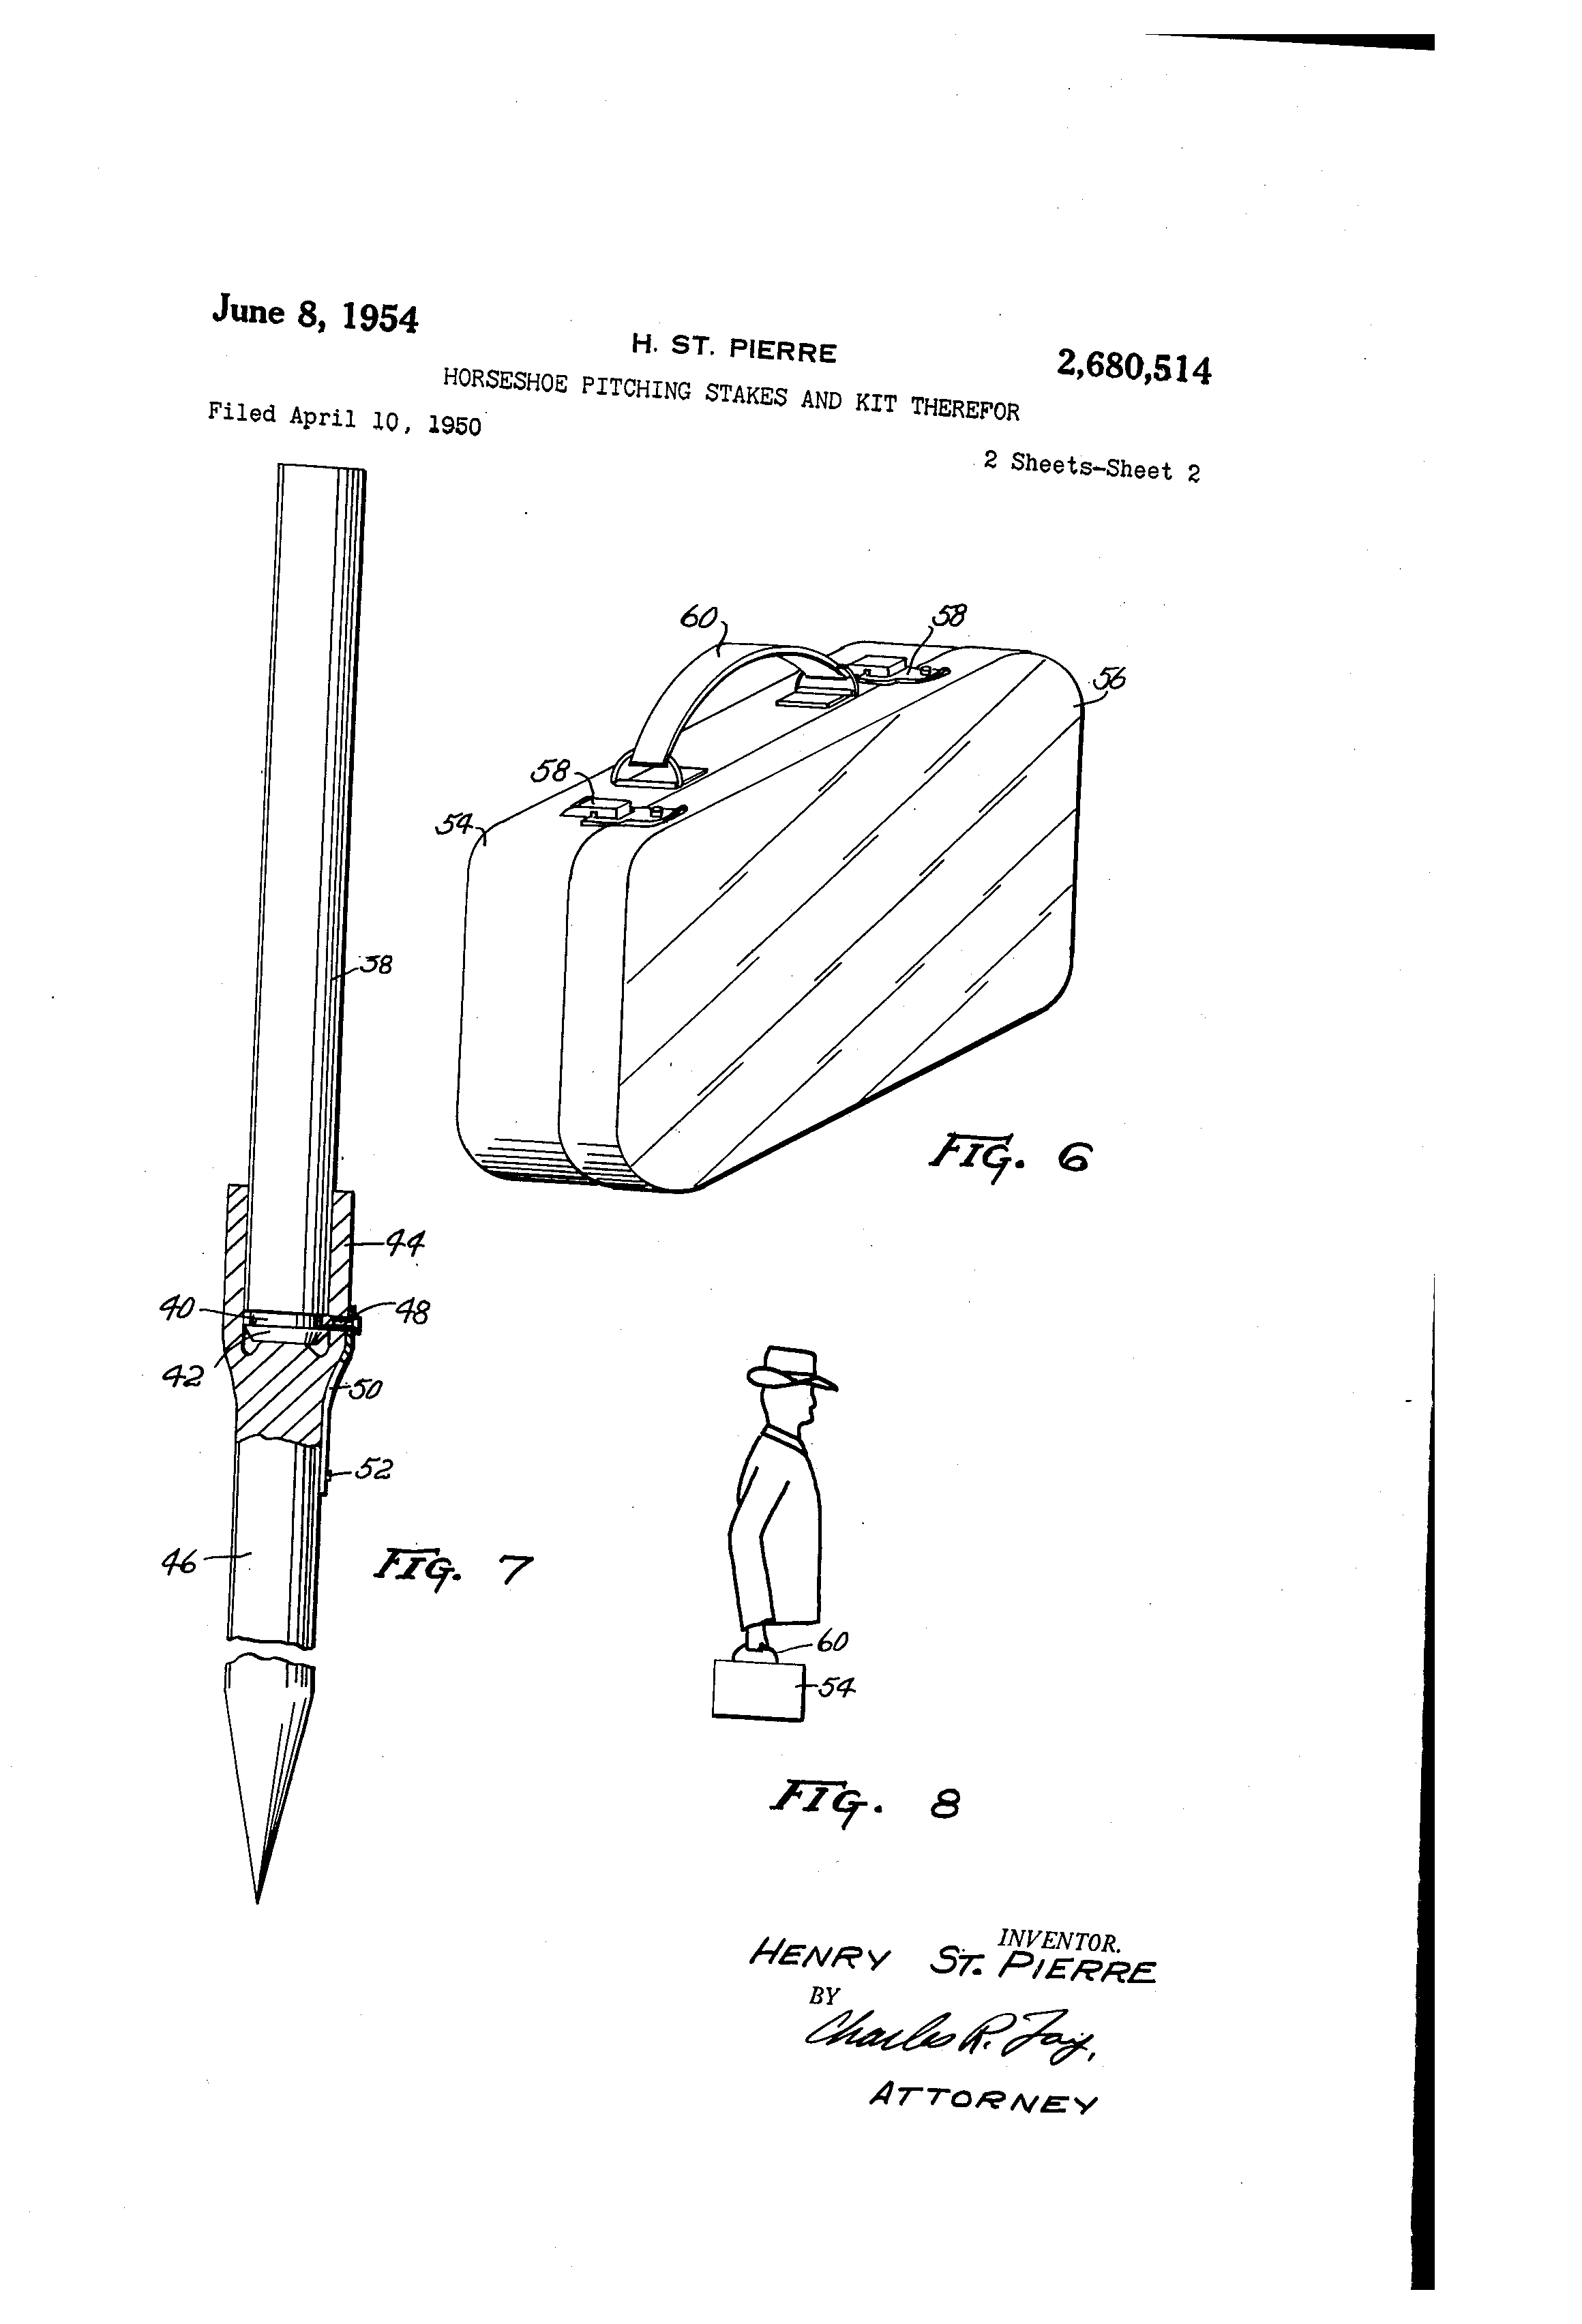 patent us2680514 - horseshoe pitching stakes and kit therefor